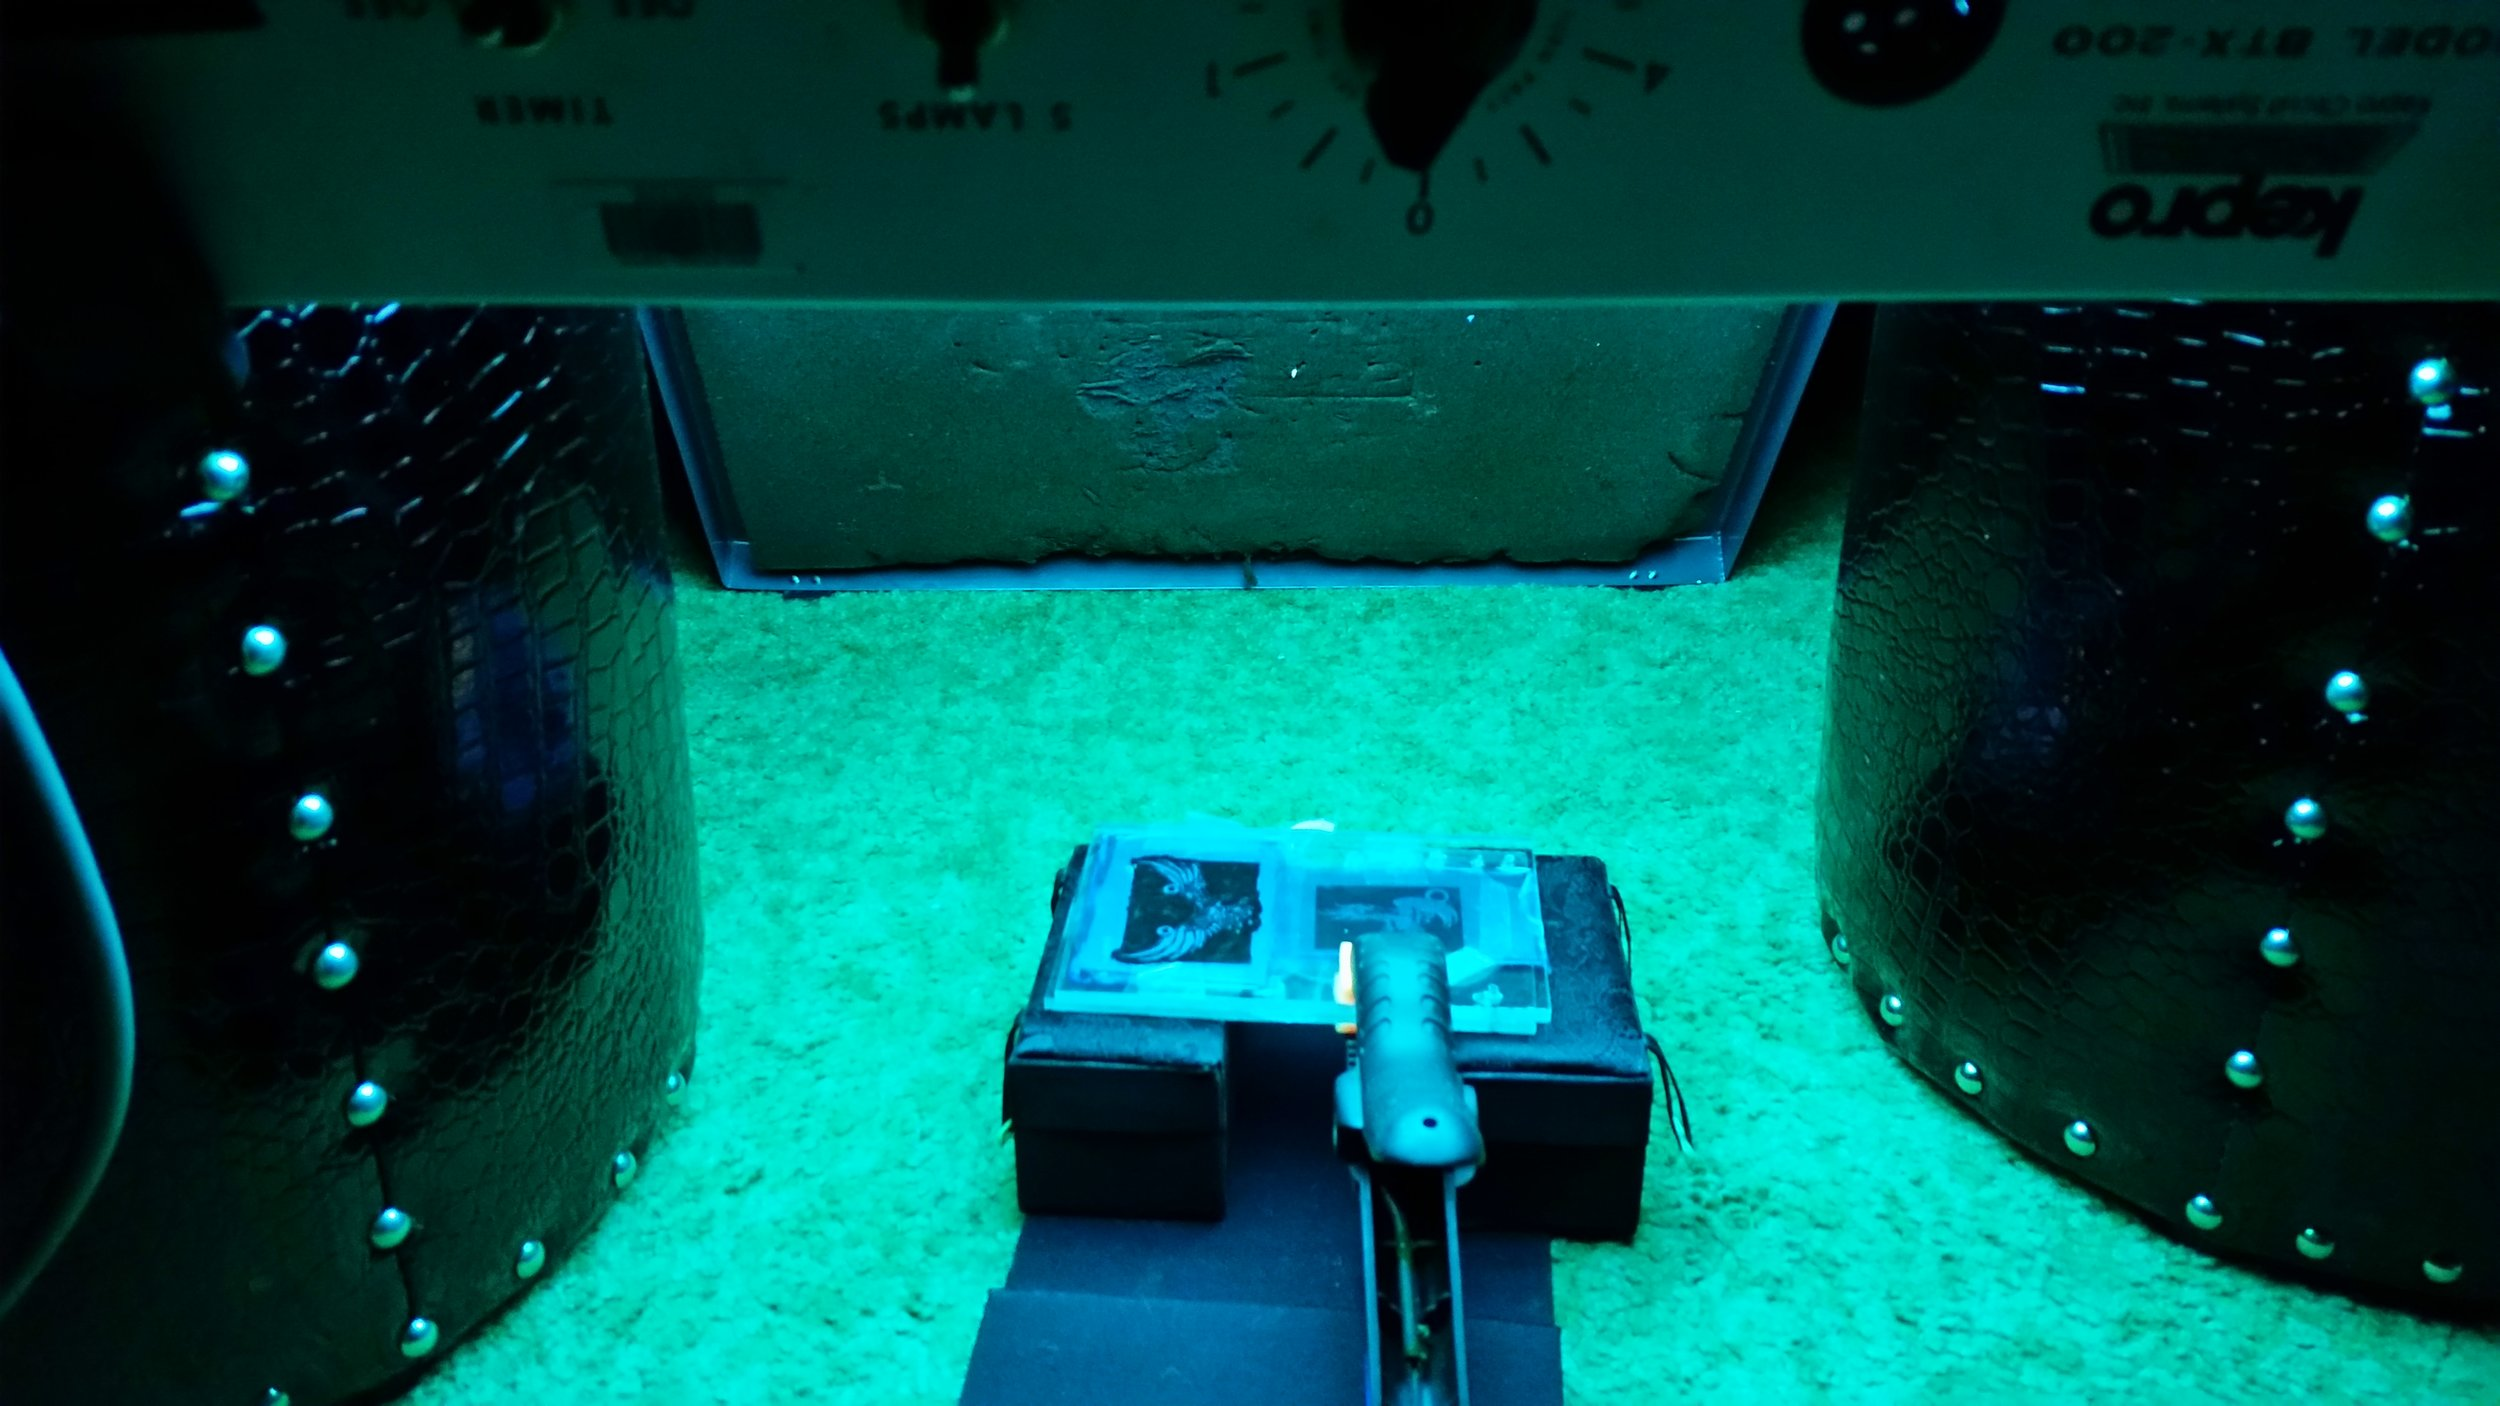 Step 3: Adhere a layer of photoresist to the metal. Use UV light exposure to transfer the transparency to the photoresist.